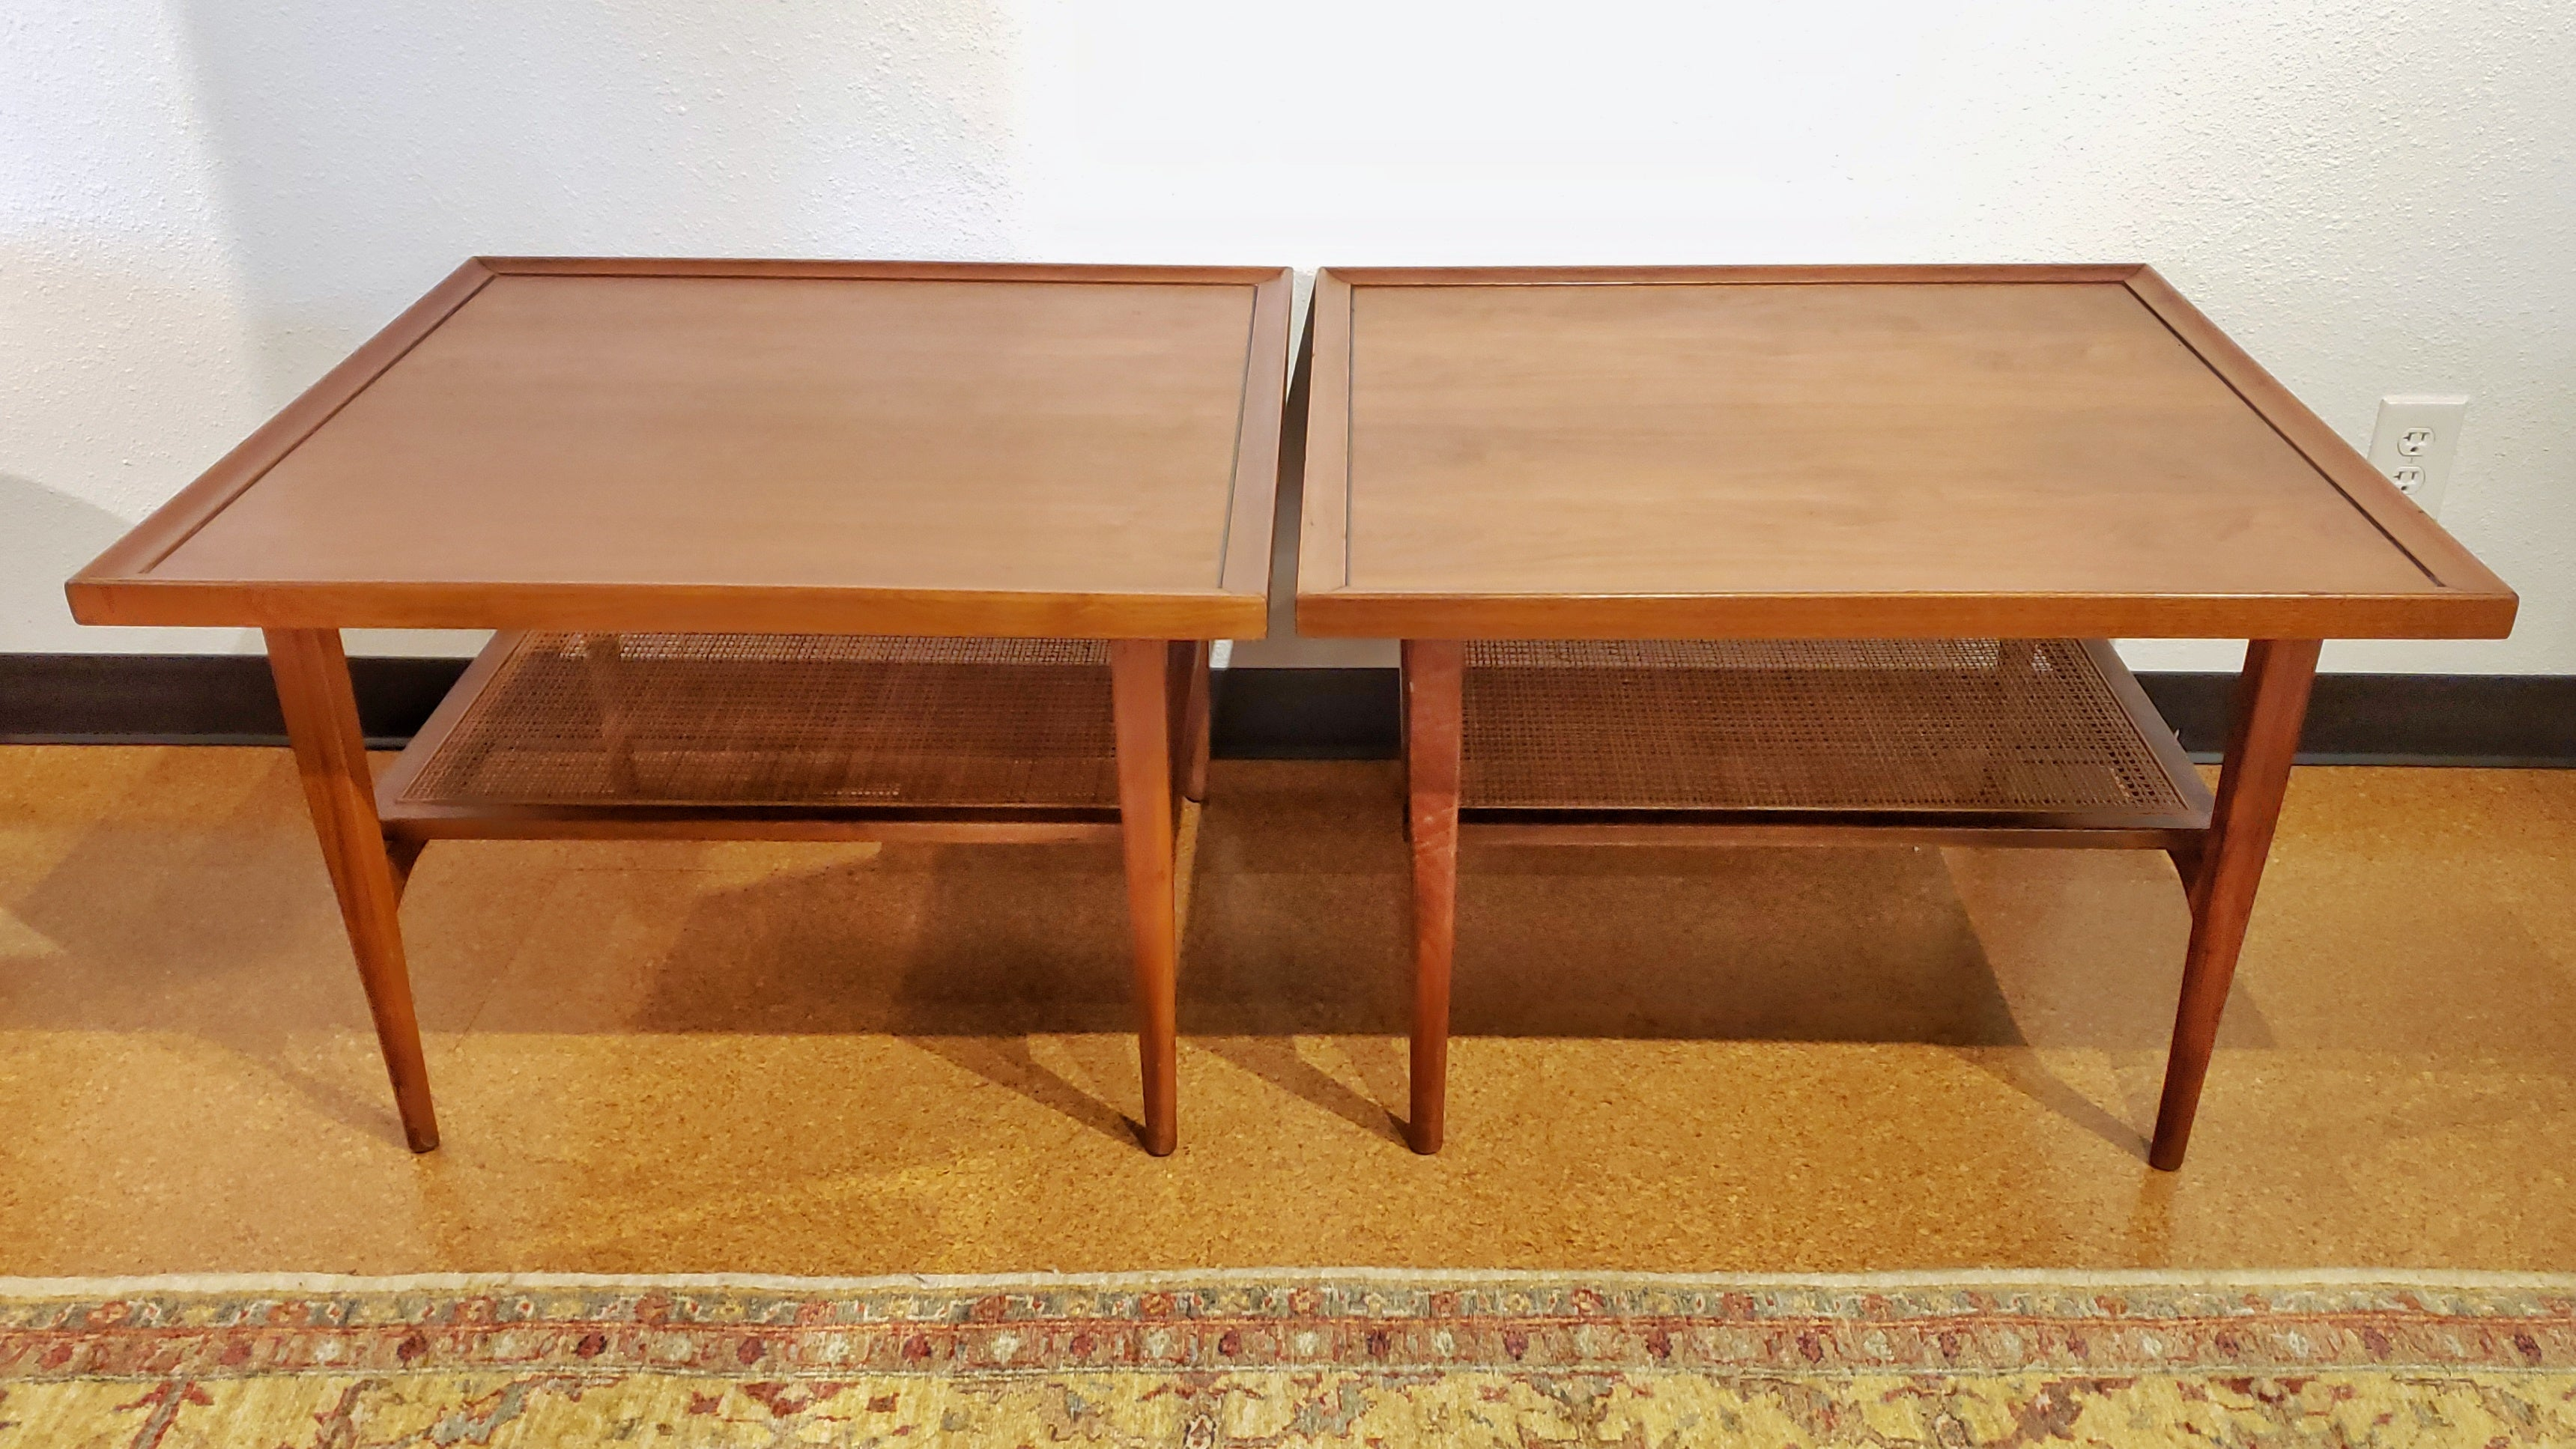 KIPP STEWART & STEWART MACDOUGALL 'DECLARATION' END TABLES FOR DREXEL